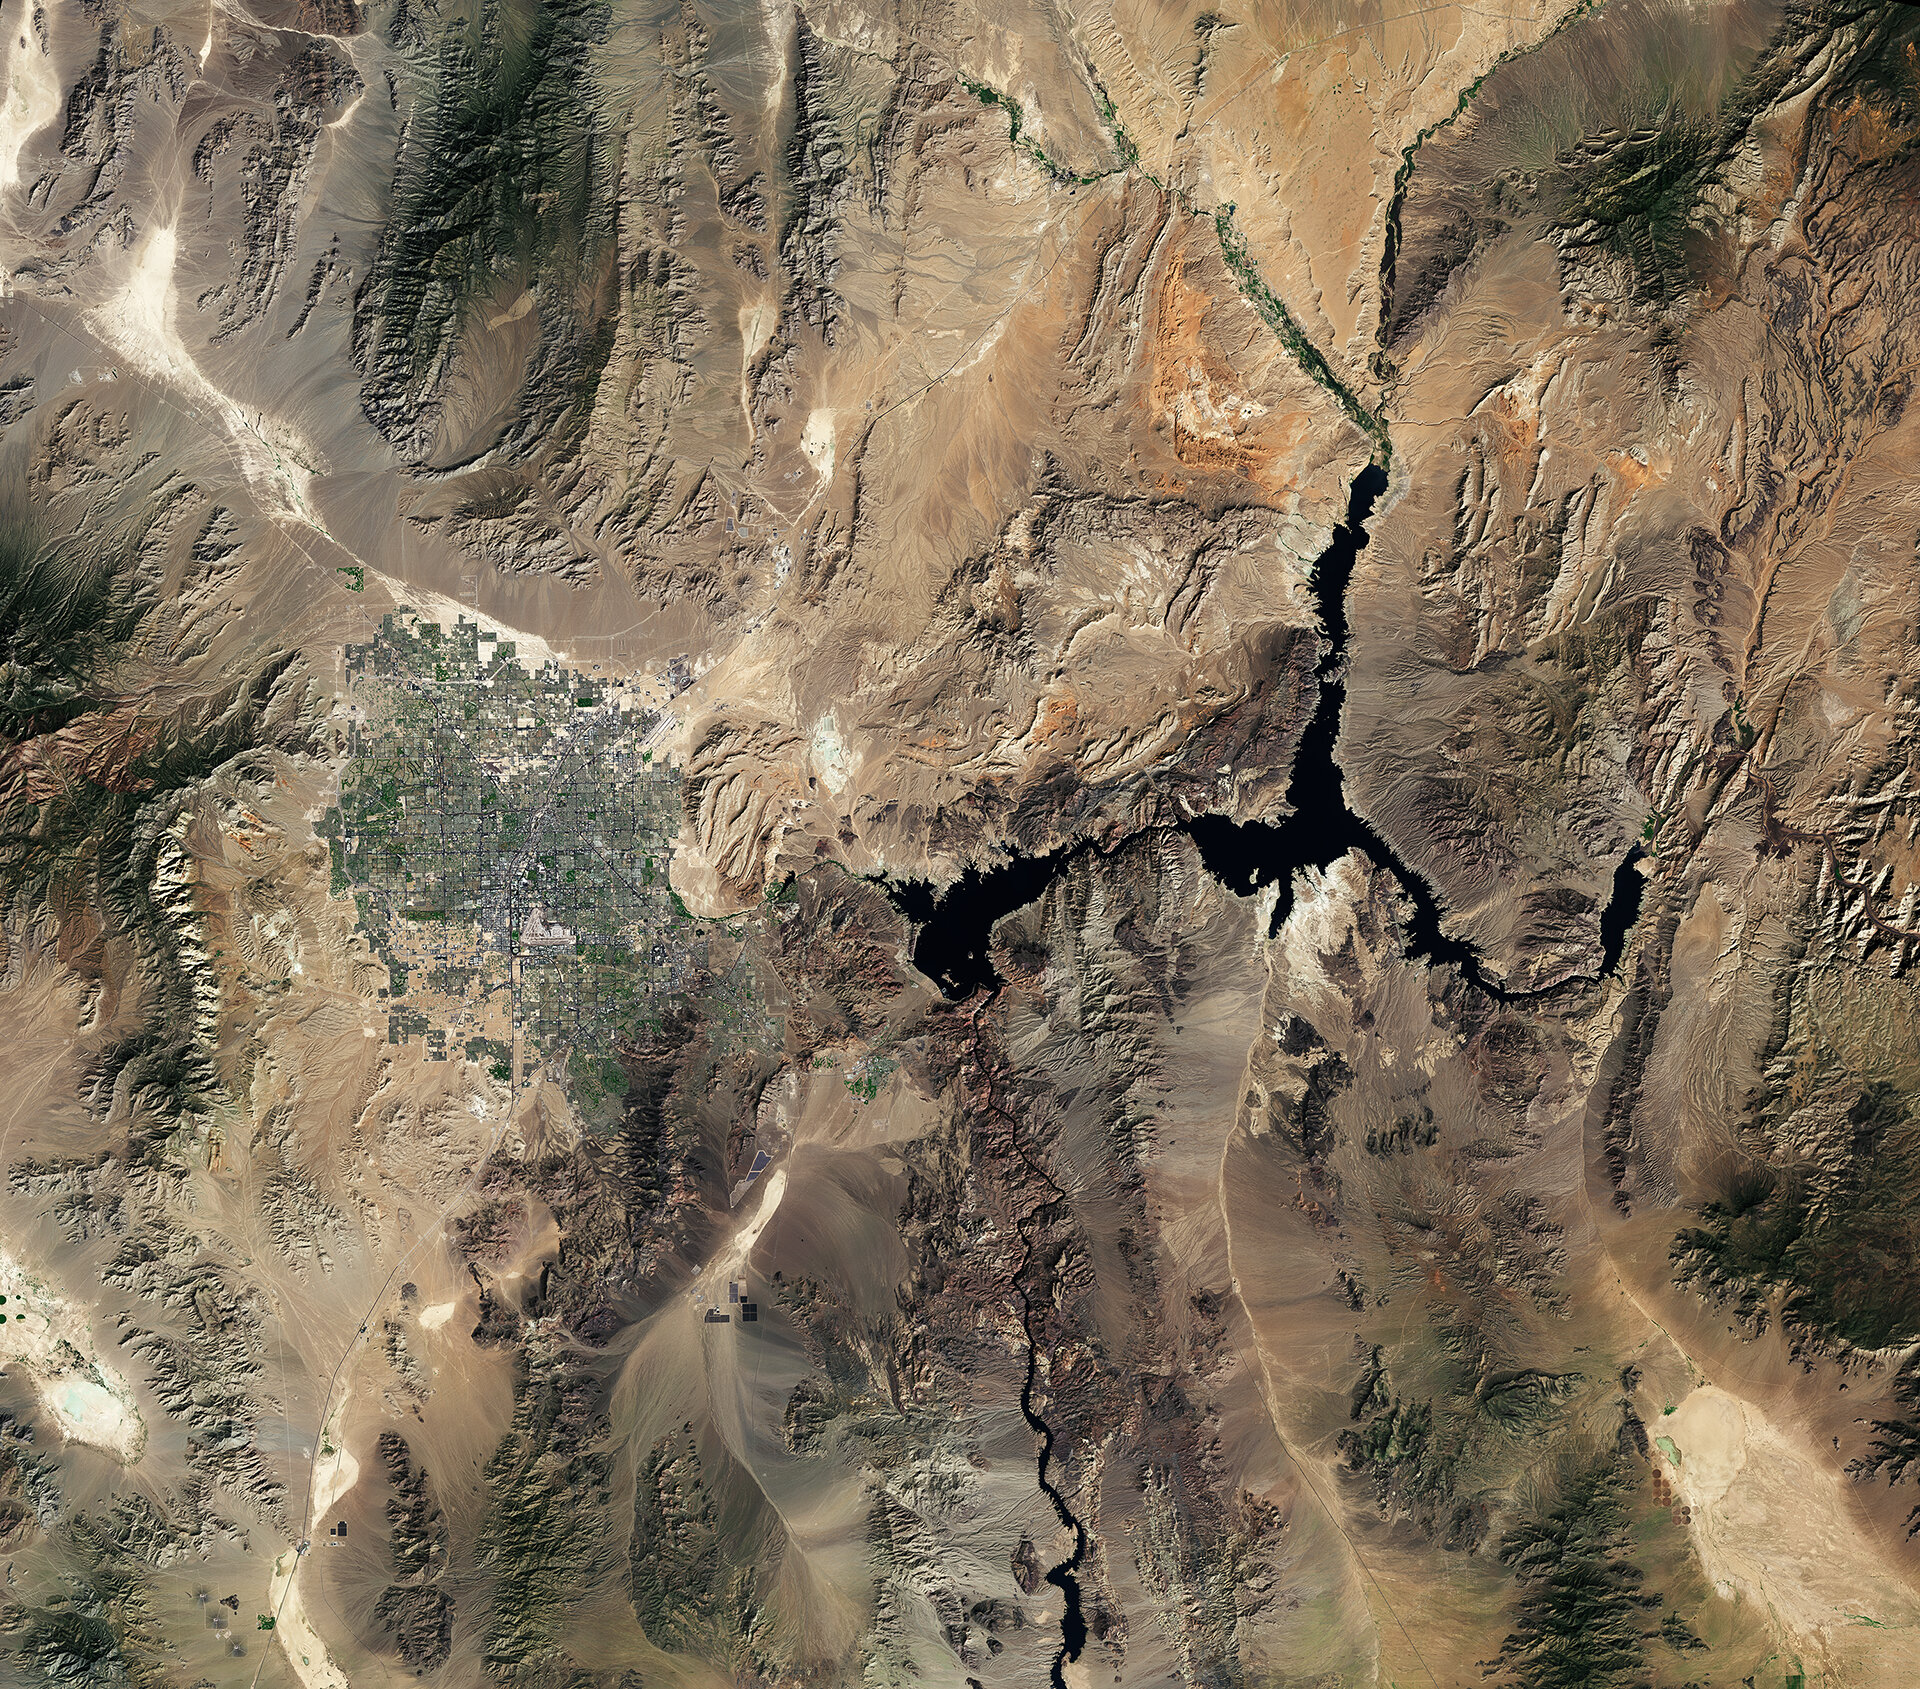 Las Vegas and Lake Mead